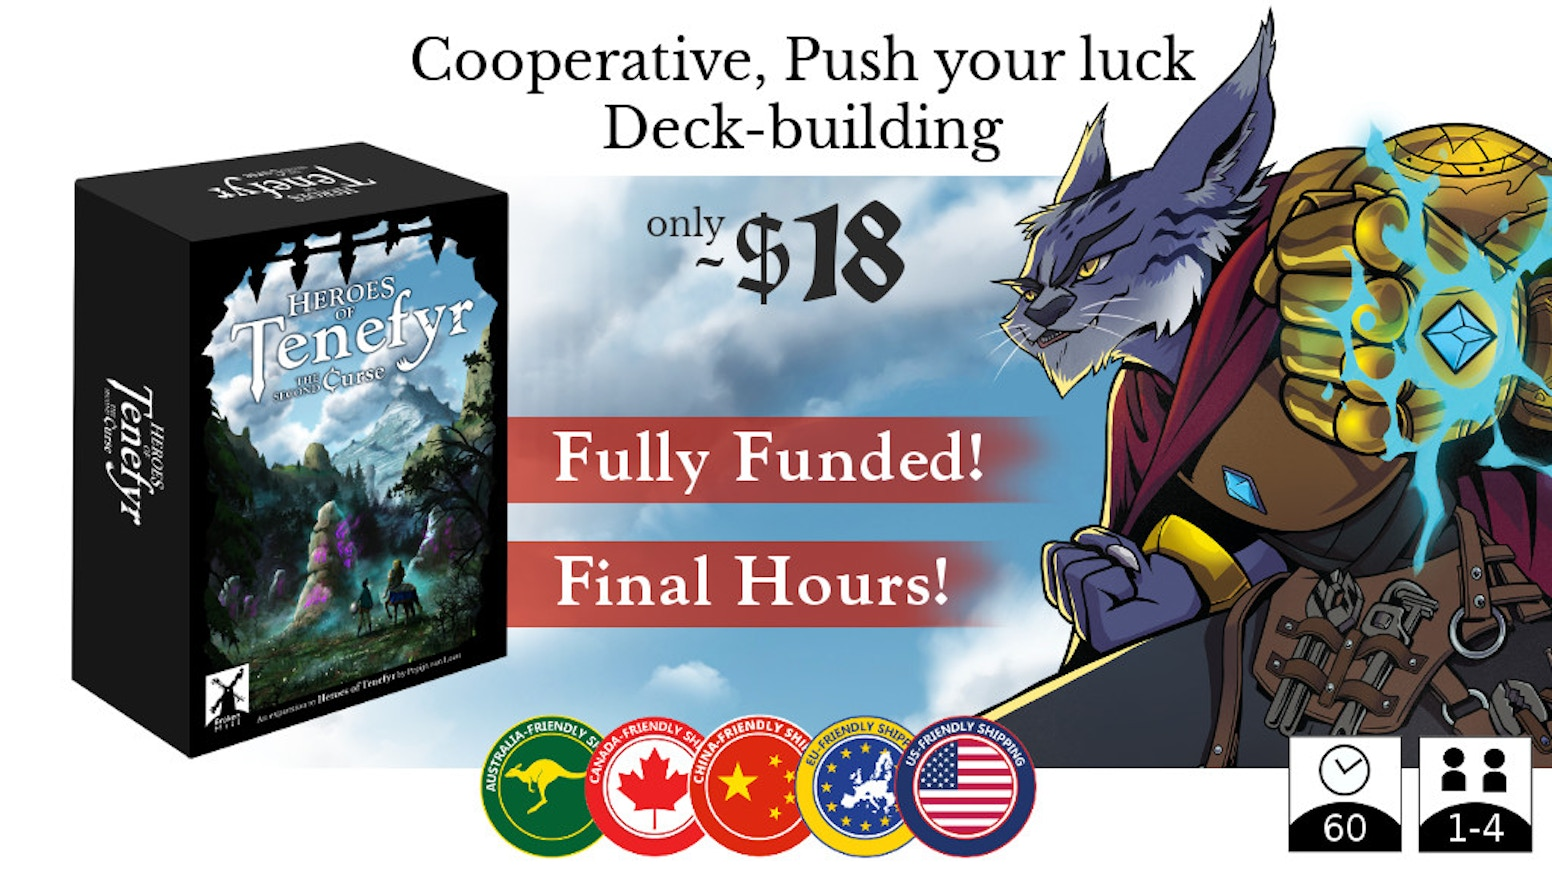 Cooperative, push your luck Deck-building for 1-4 players